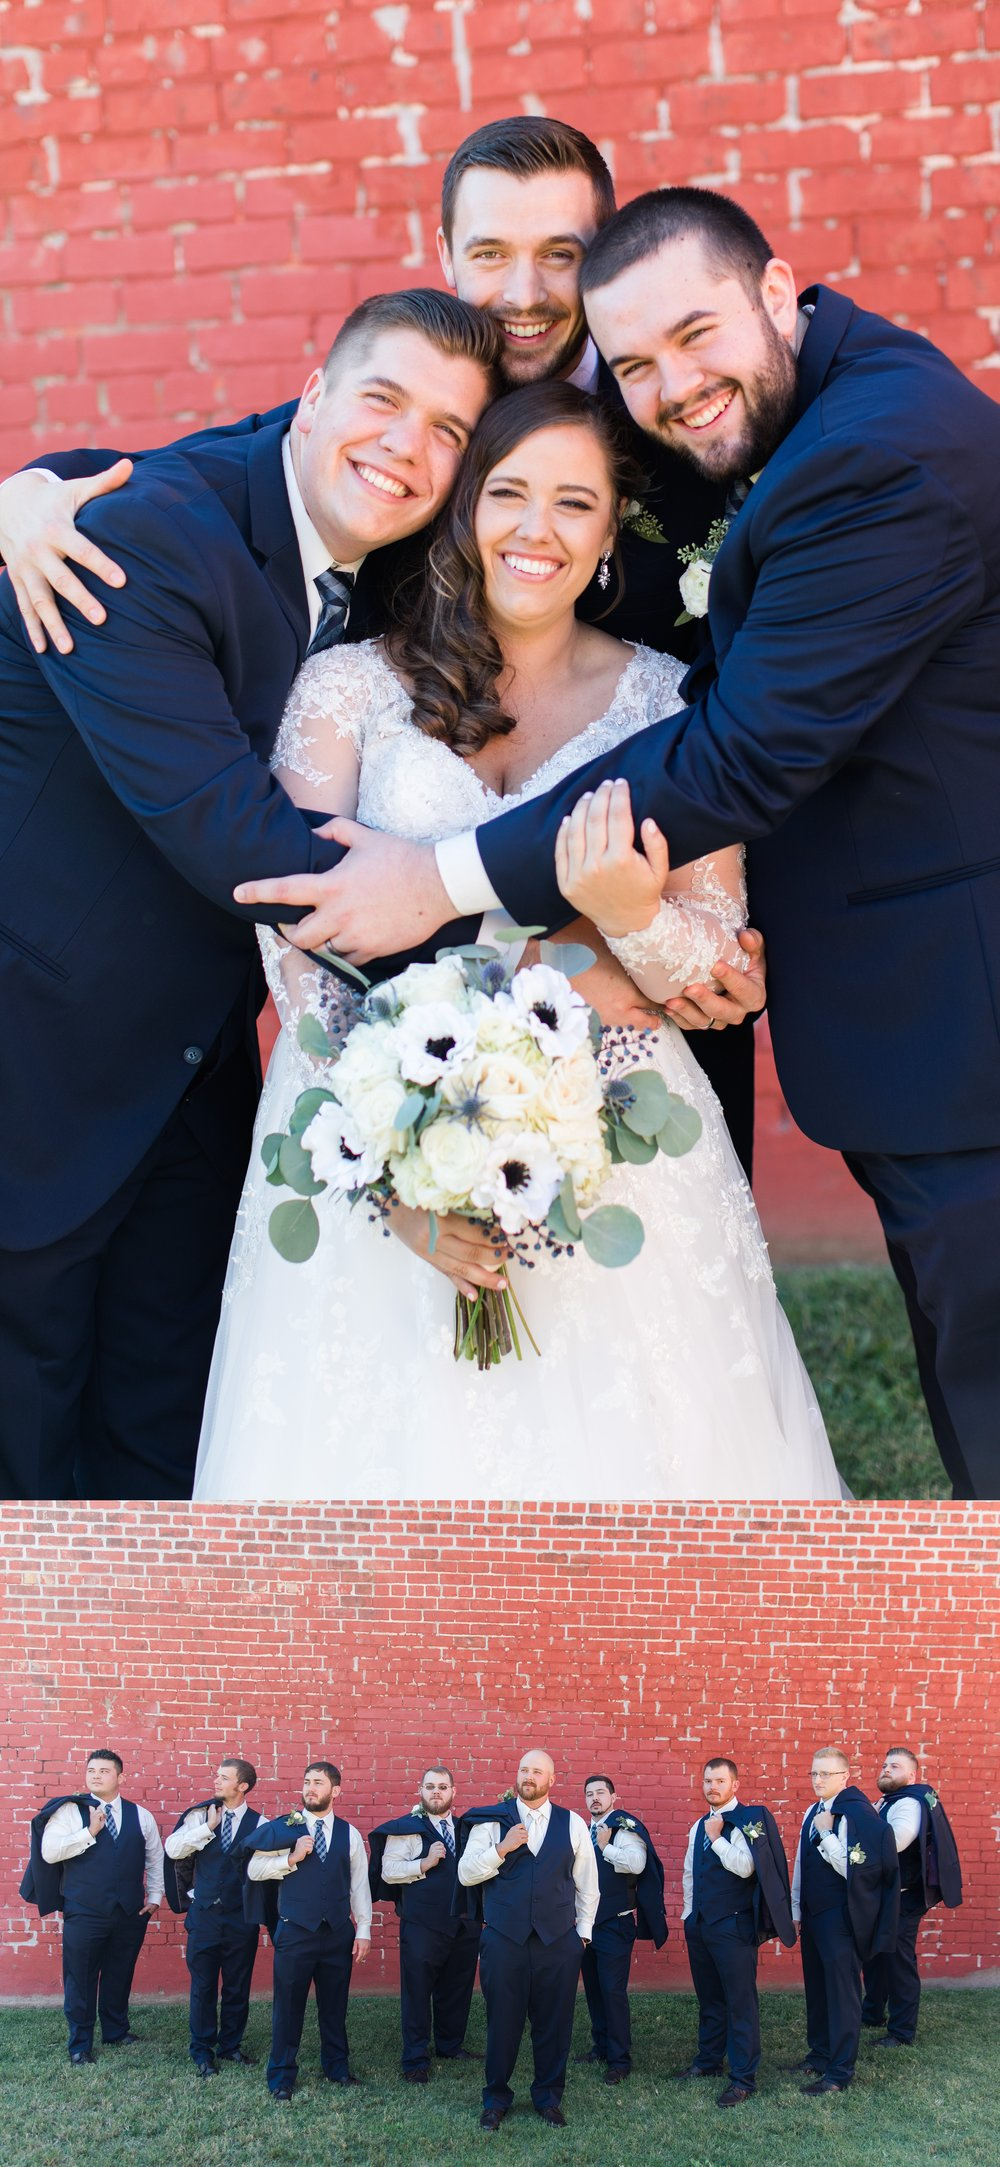 Oklahoma City Destination Wedding Photographer Jessica McBroom